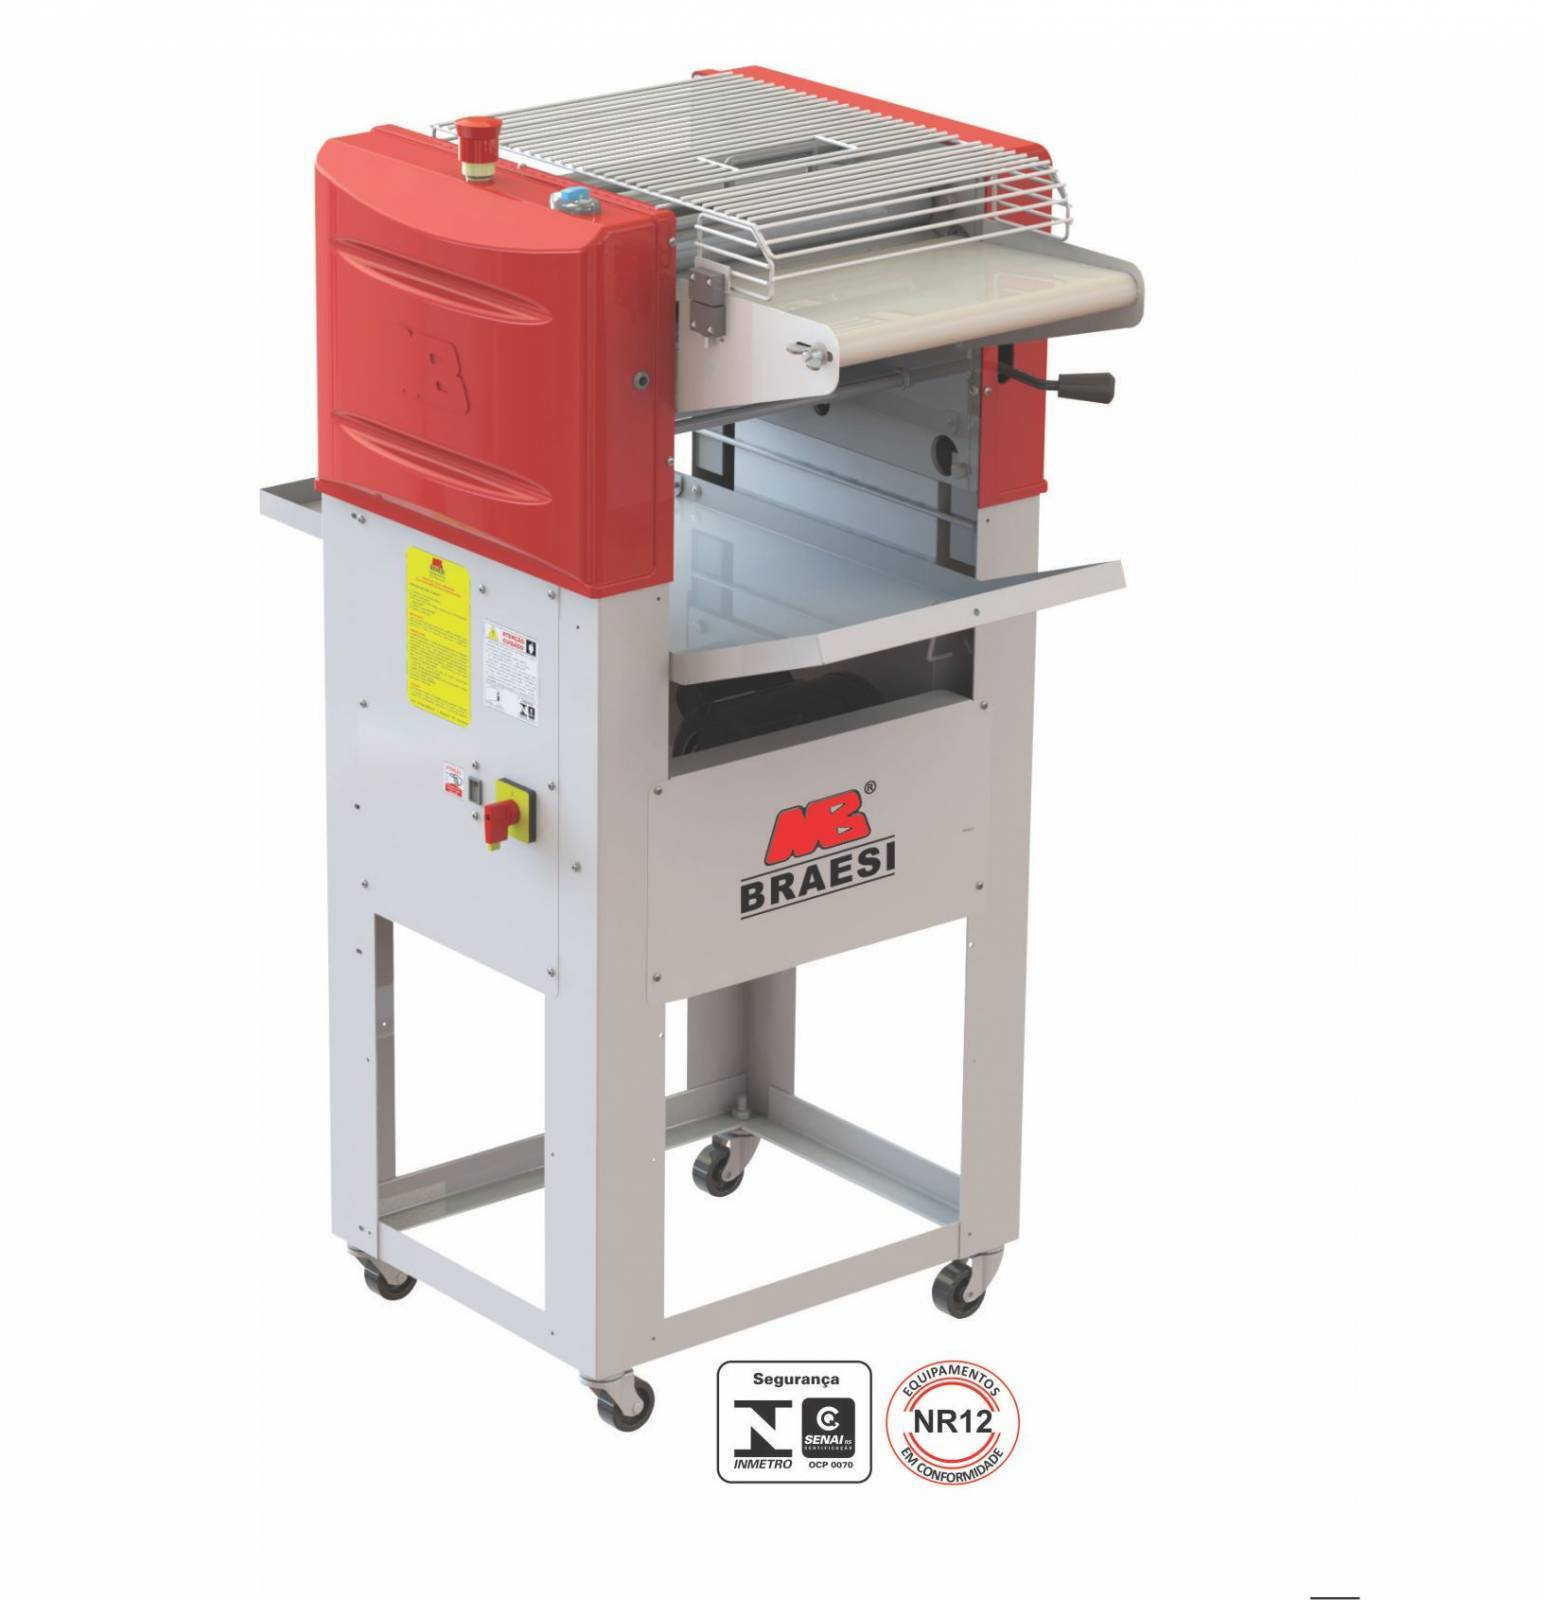 Modeladora de Pães Industrial 350mm Pedestal MB35/1 Braesi - Magazine do Chef